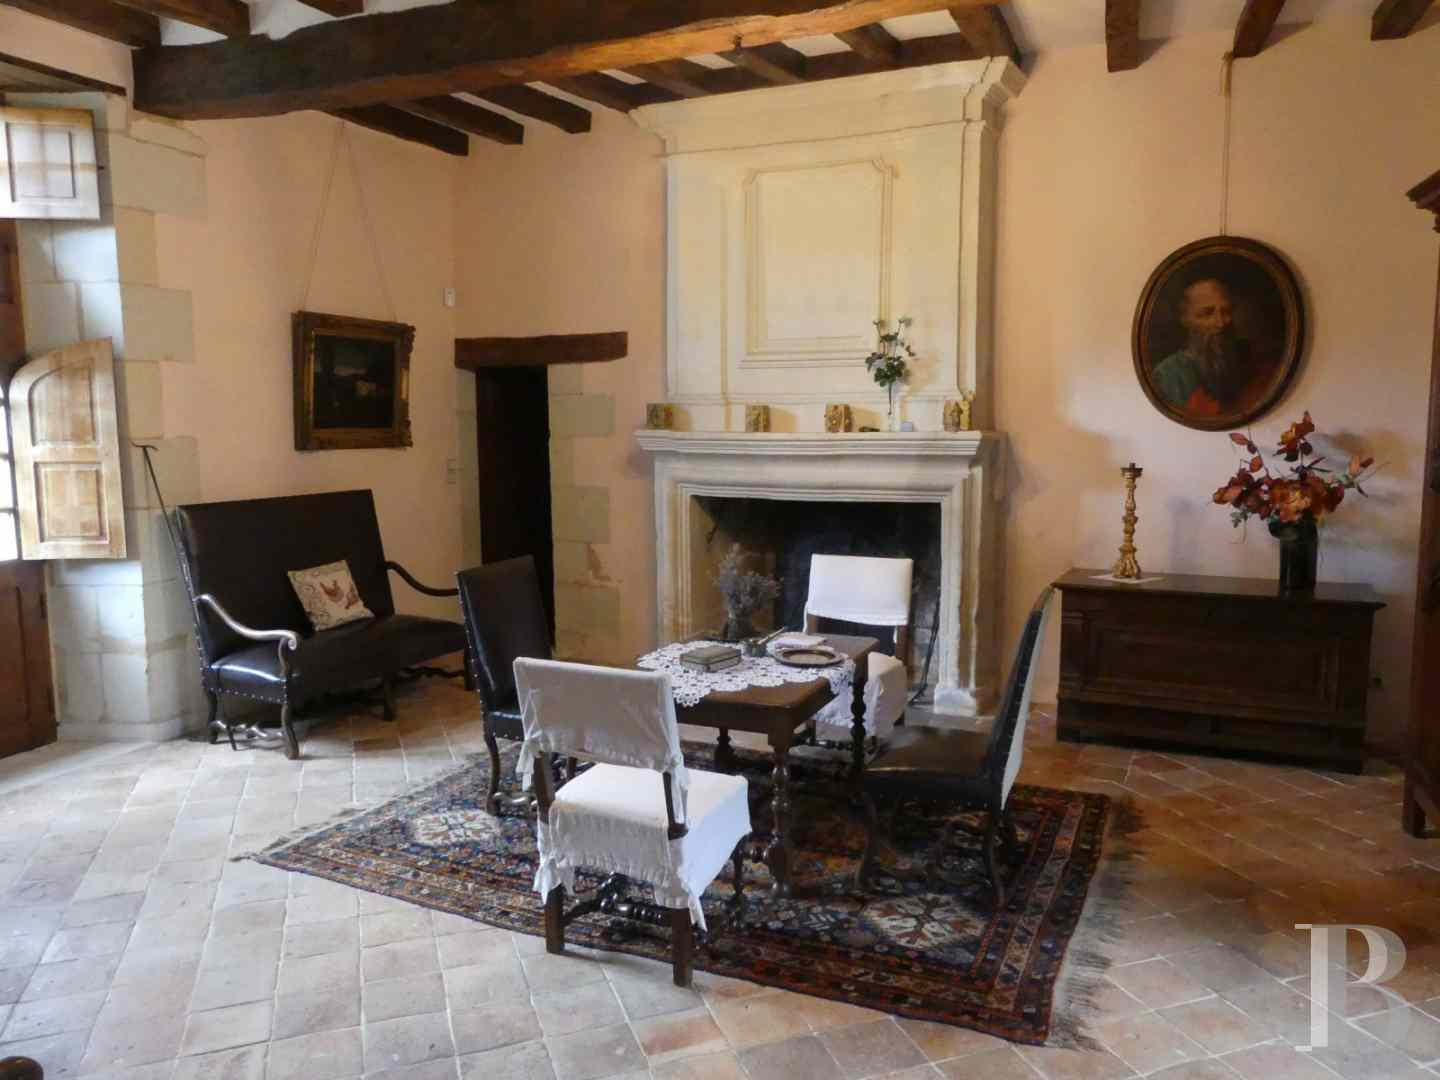 property for sale France poitou charentes residences historic - 8 zoom